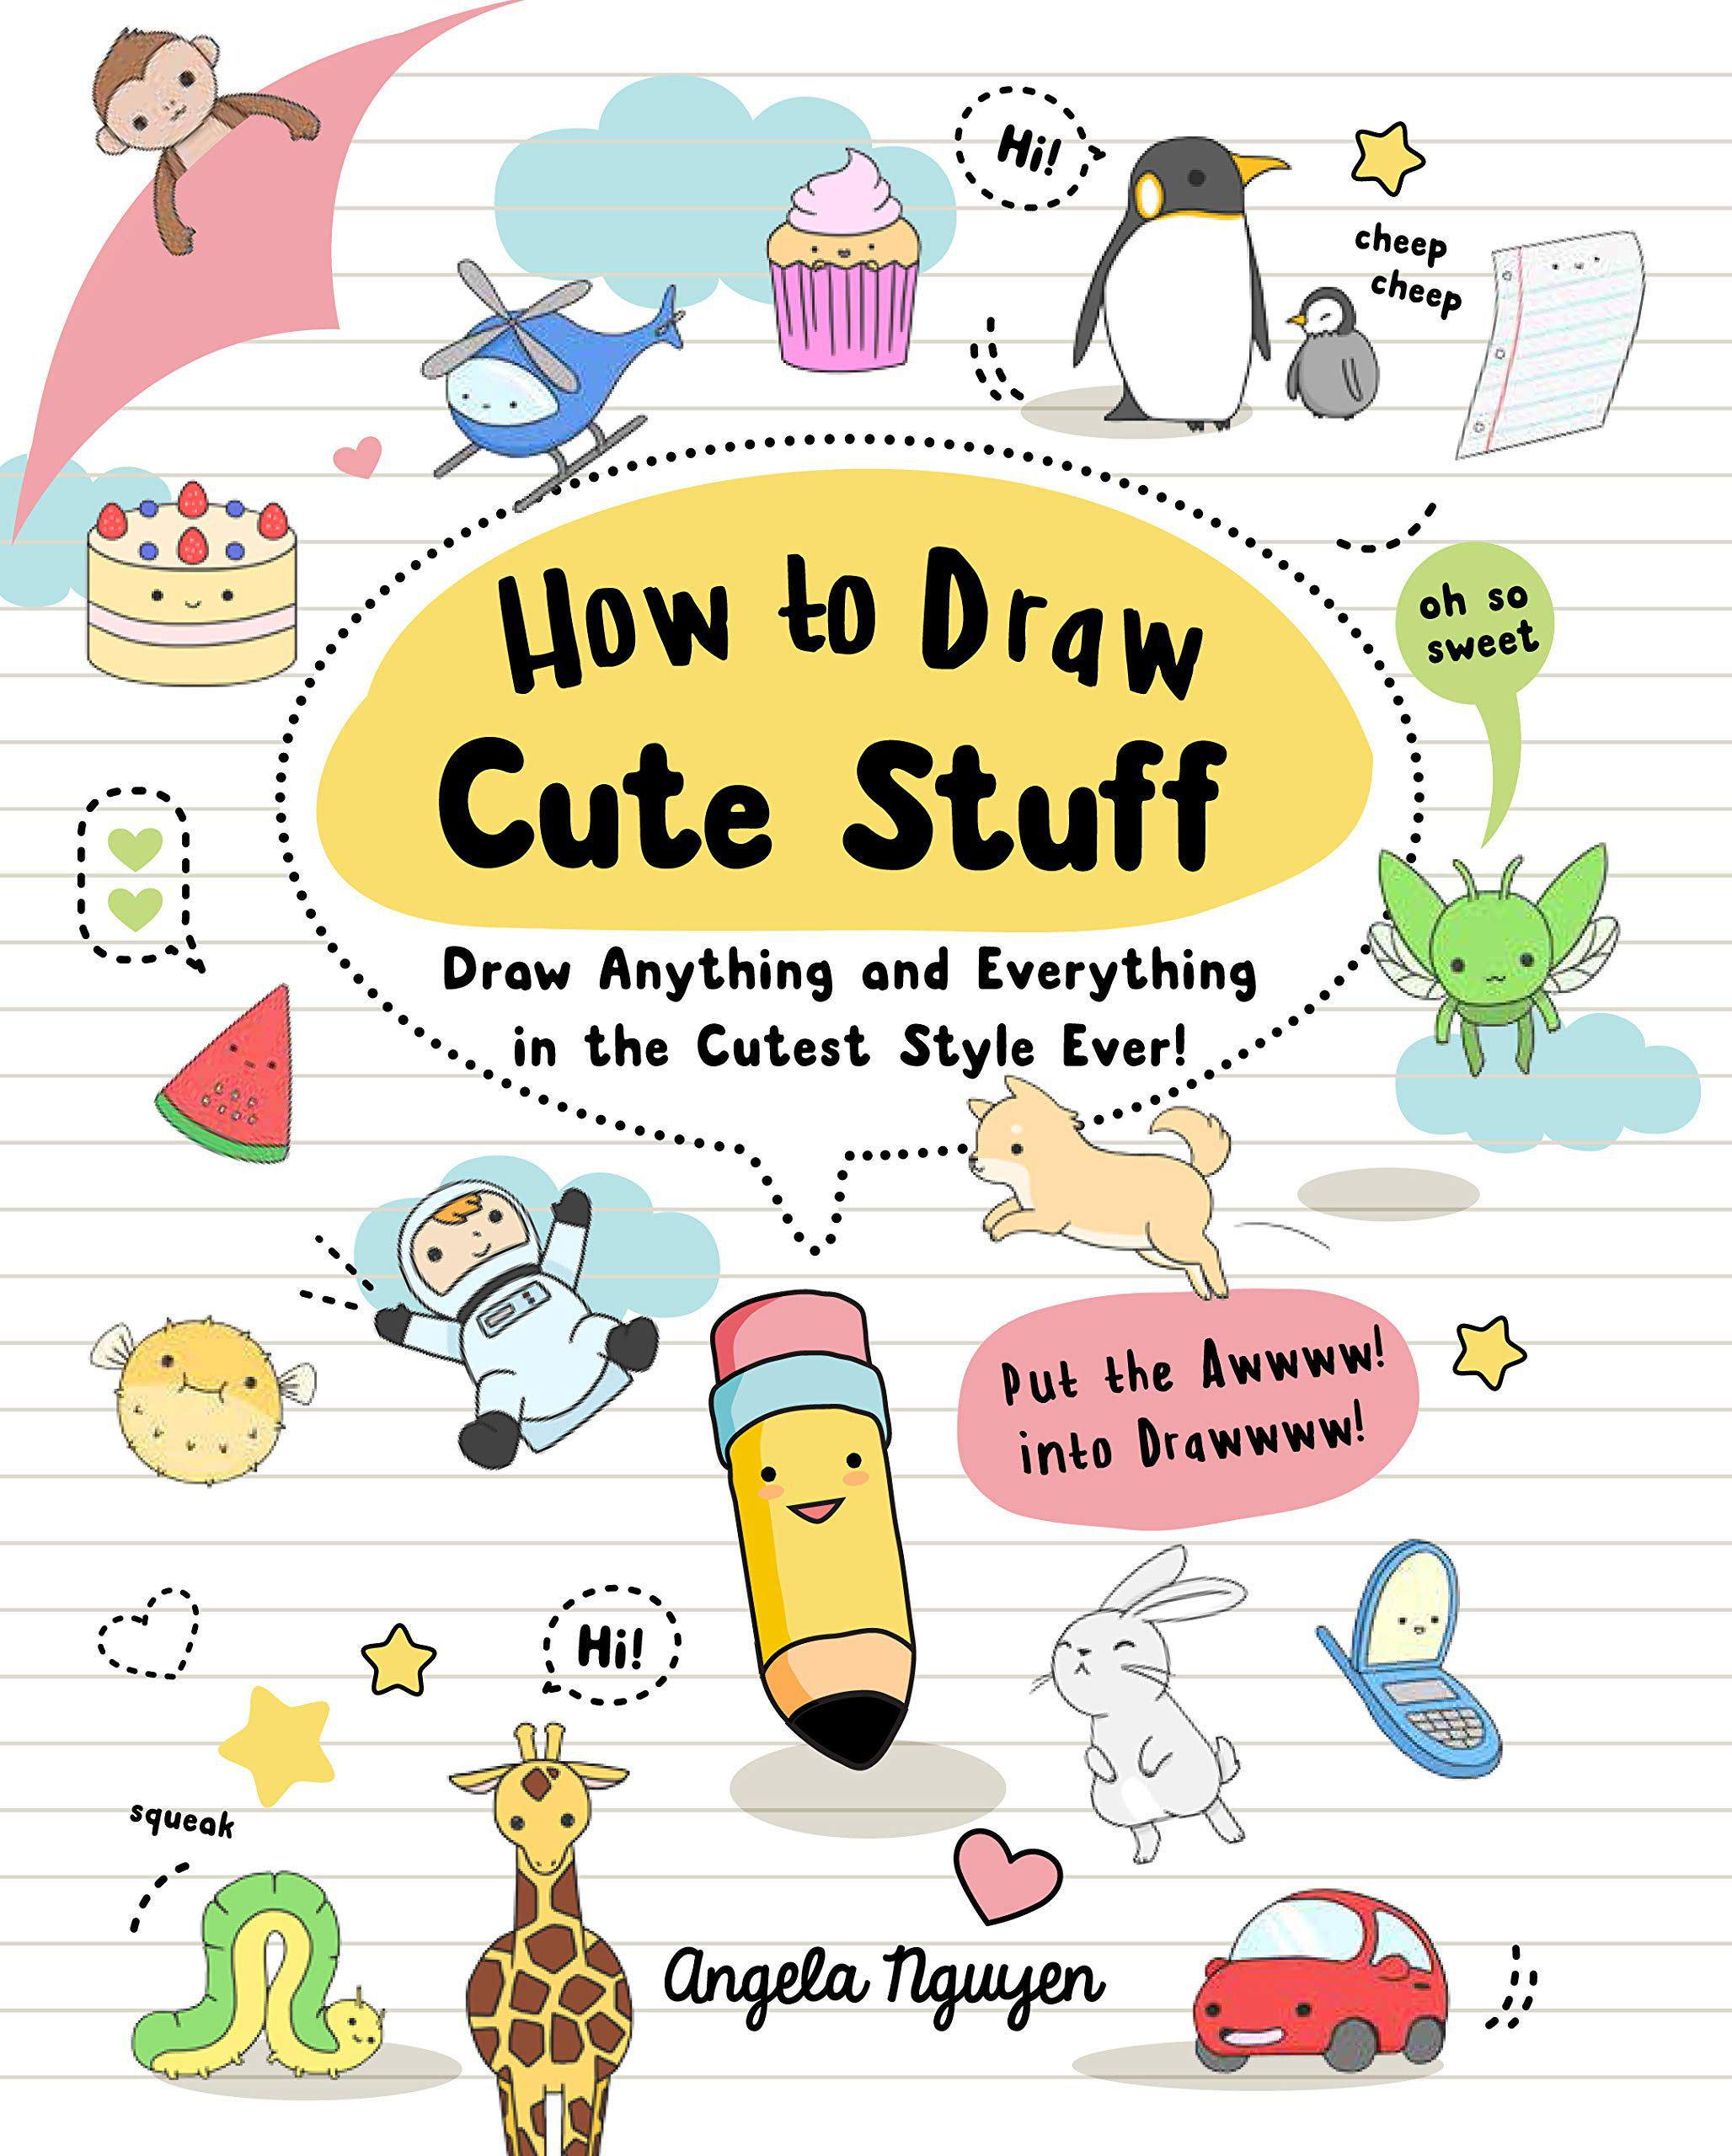 Cover of how to draw cute stuff by nguyen